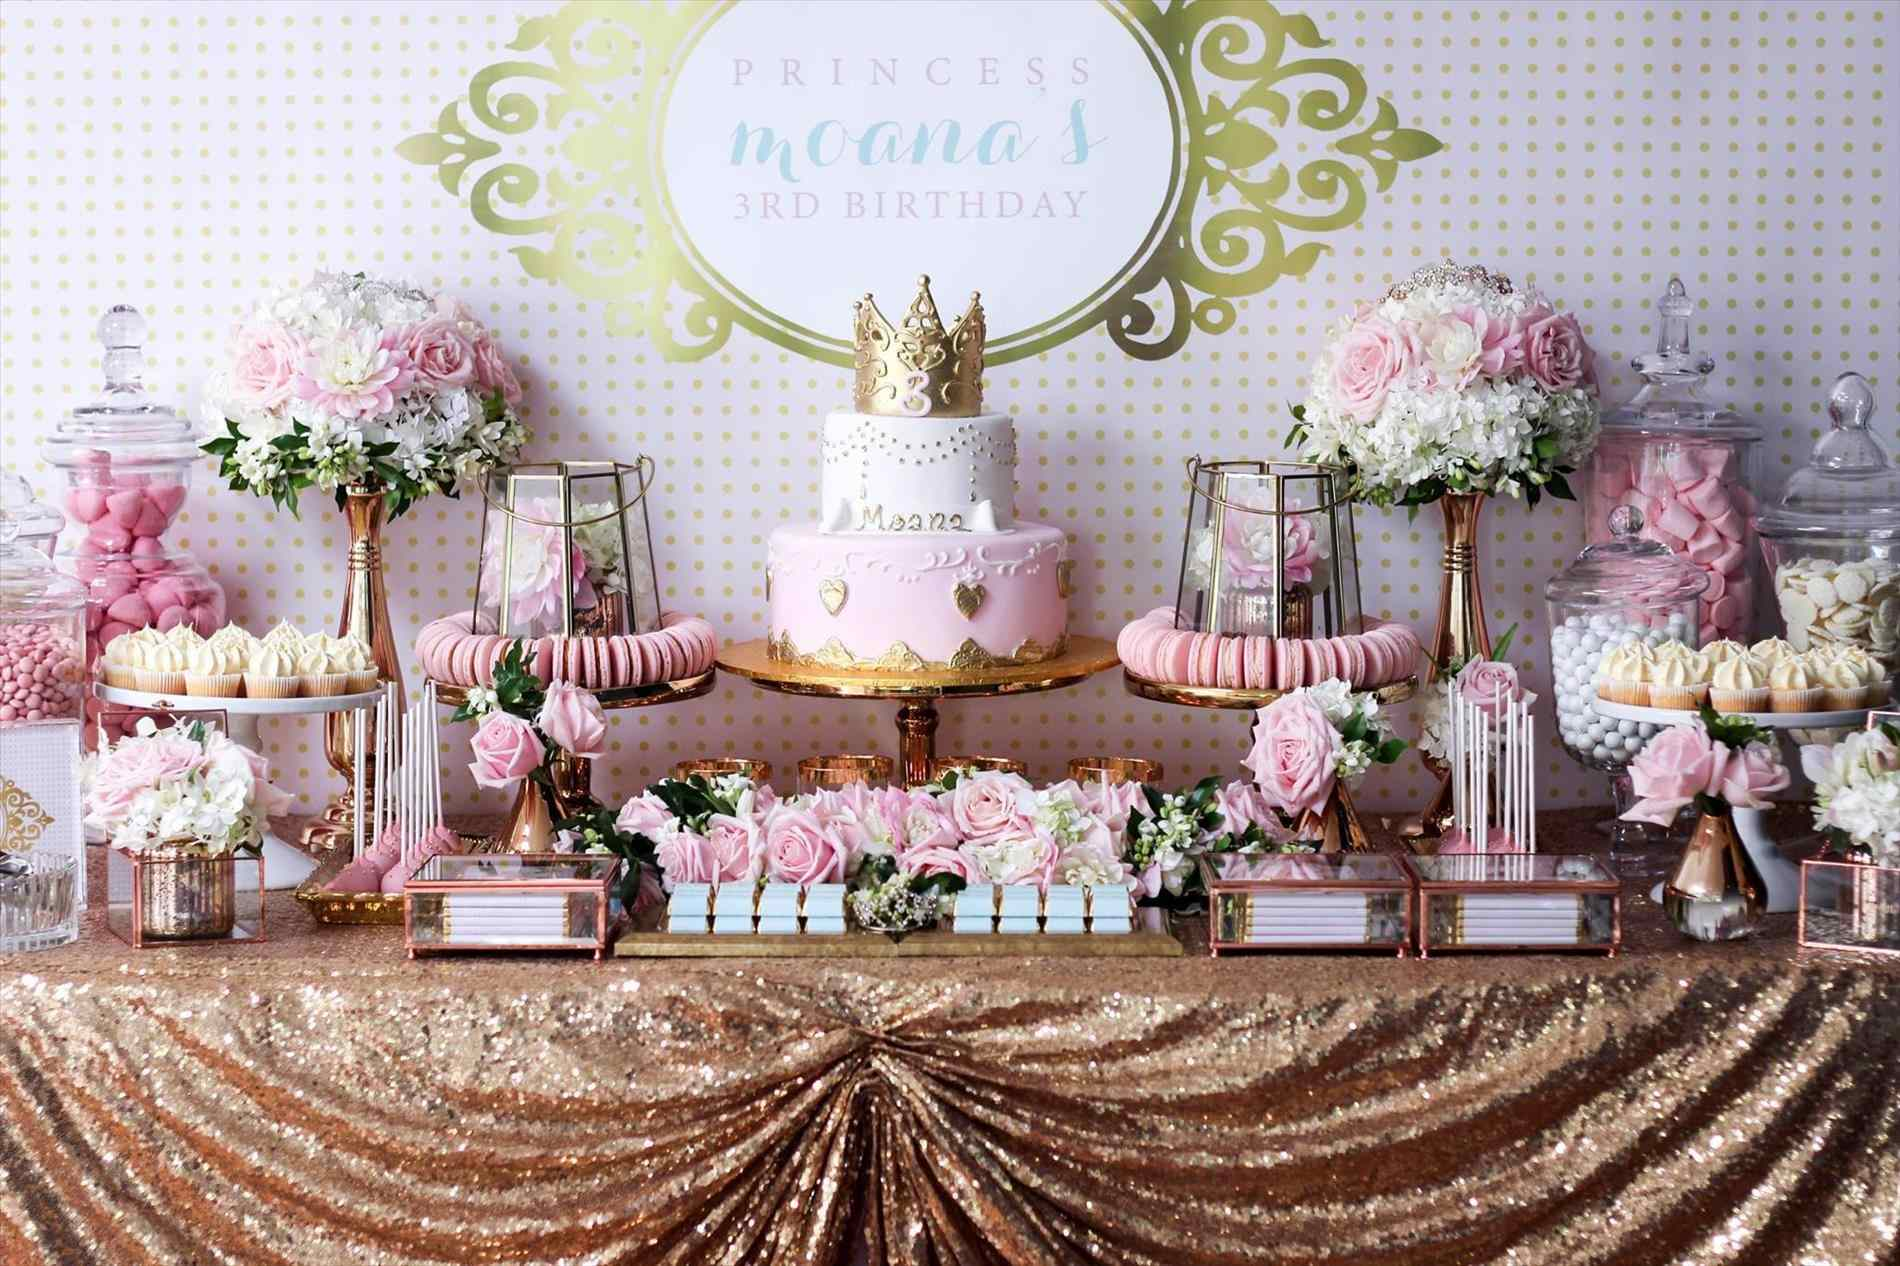 3rd birthday party themes for girl ; toud-hello-kitty-ay-mama-a-3rd-birthday-party-themes-for-girls-uchow